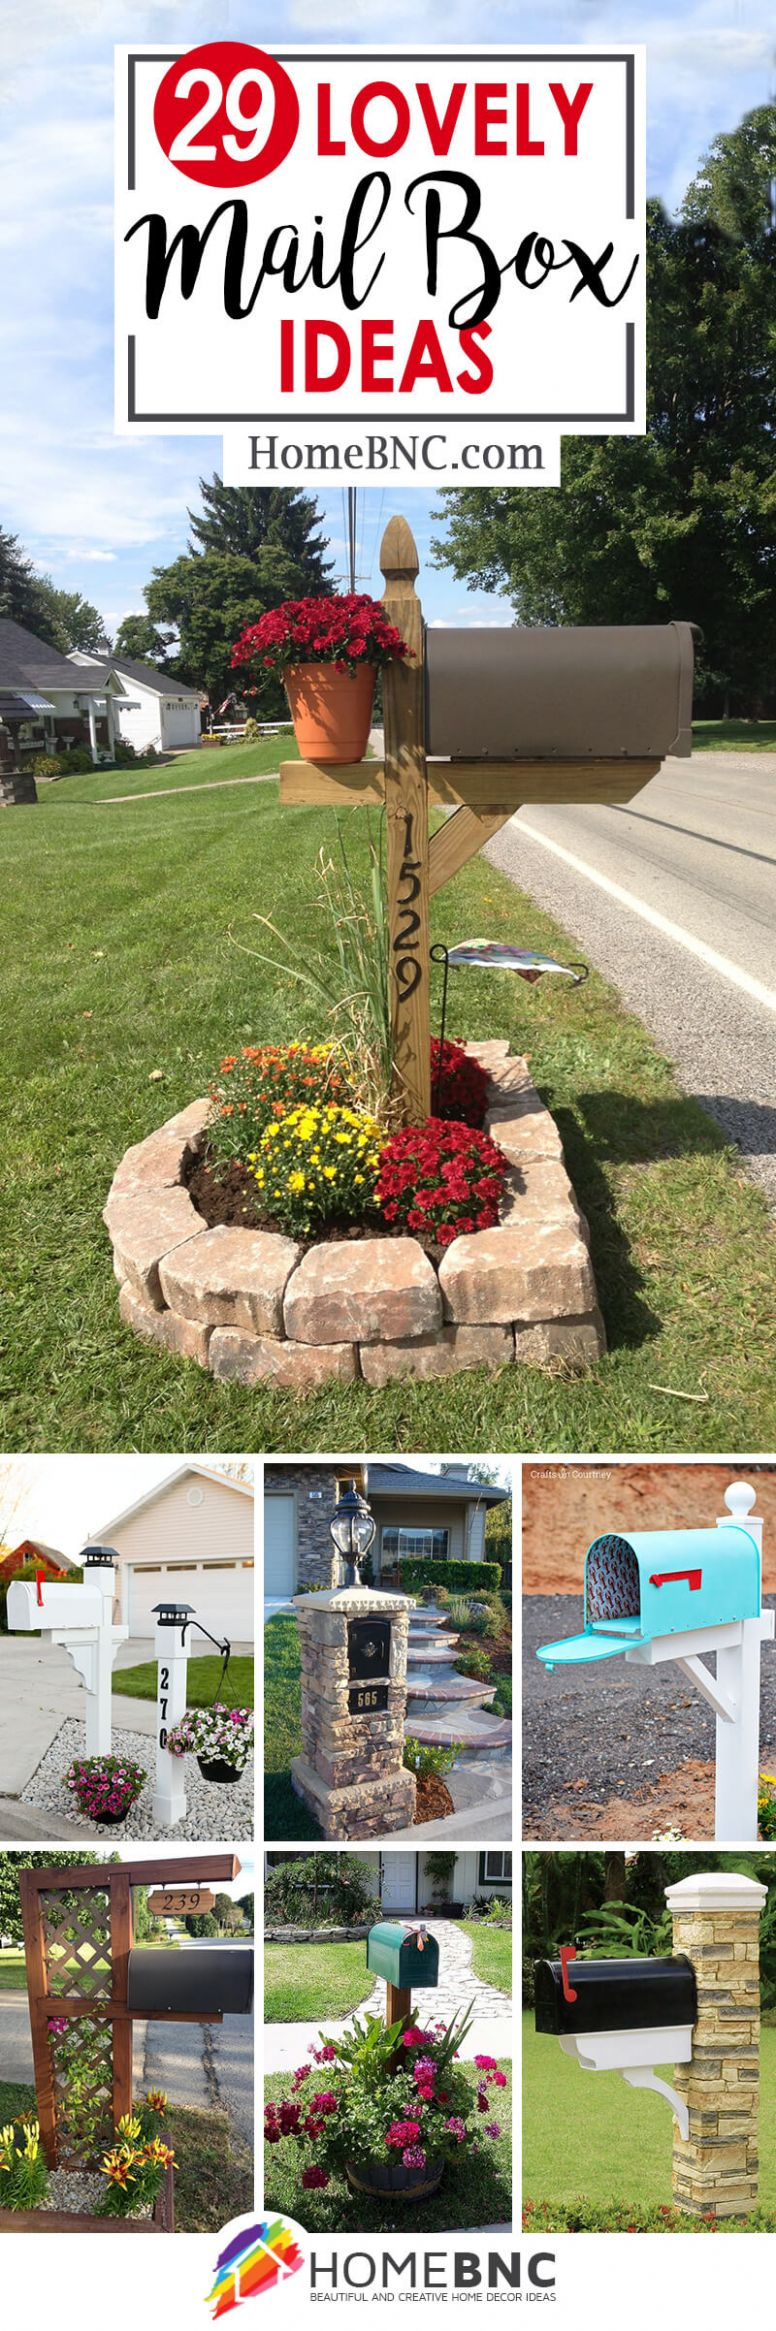 9 Best Mailbox Ideas and Designs for 9